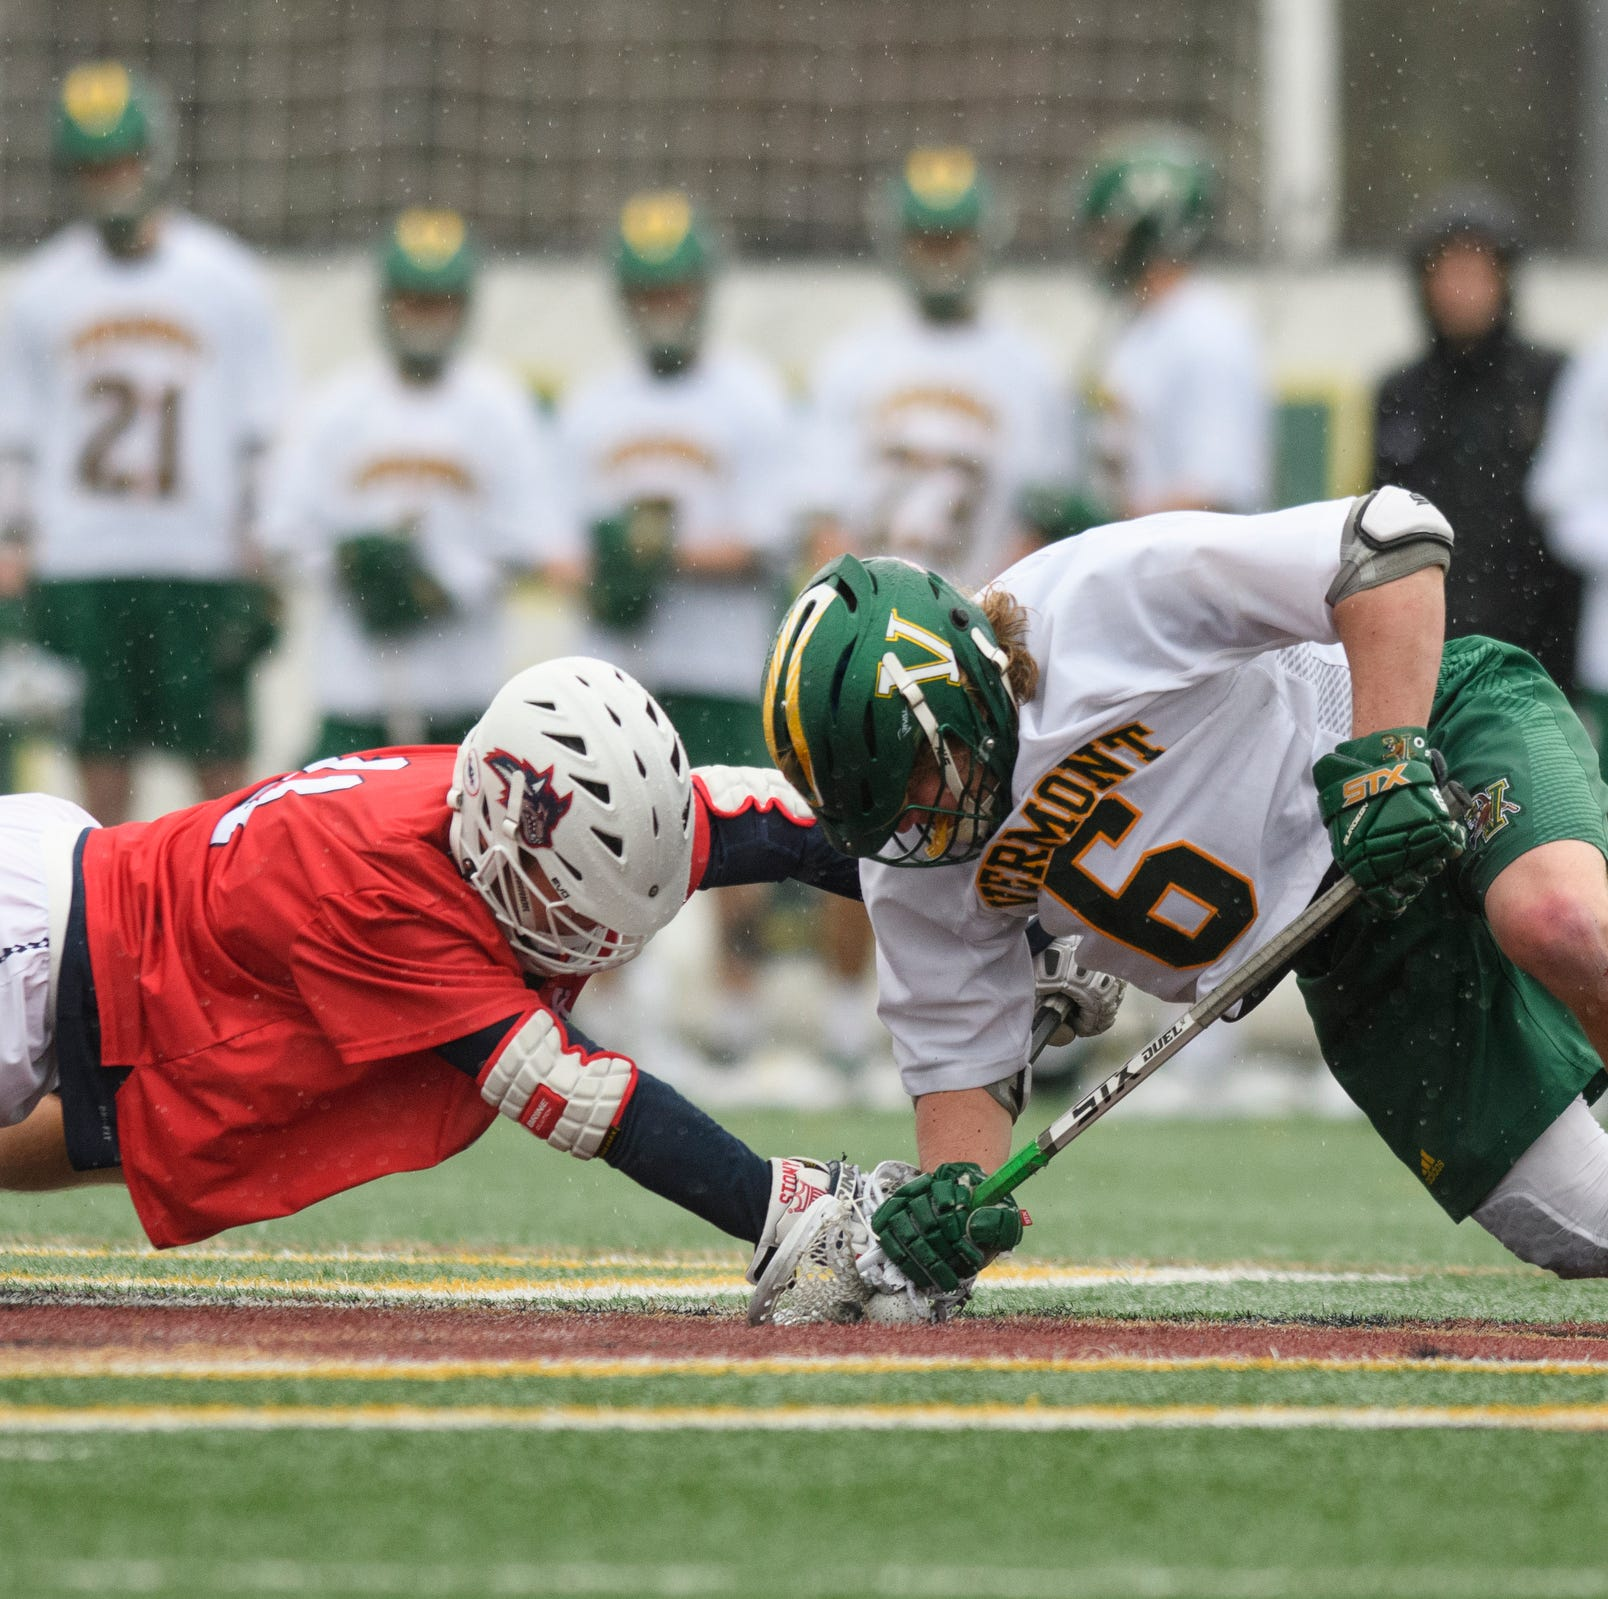 Stony Brook comeback sinks UVM men's lacrosse 10-9